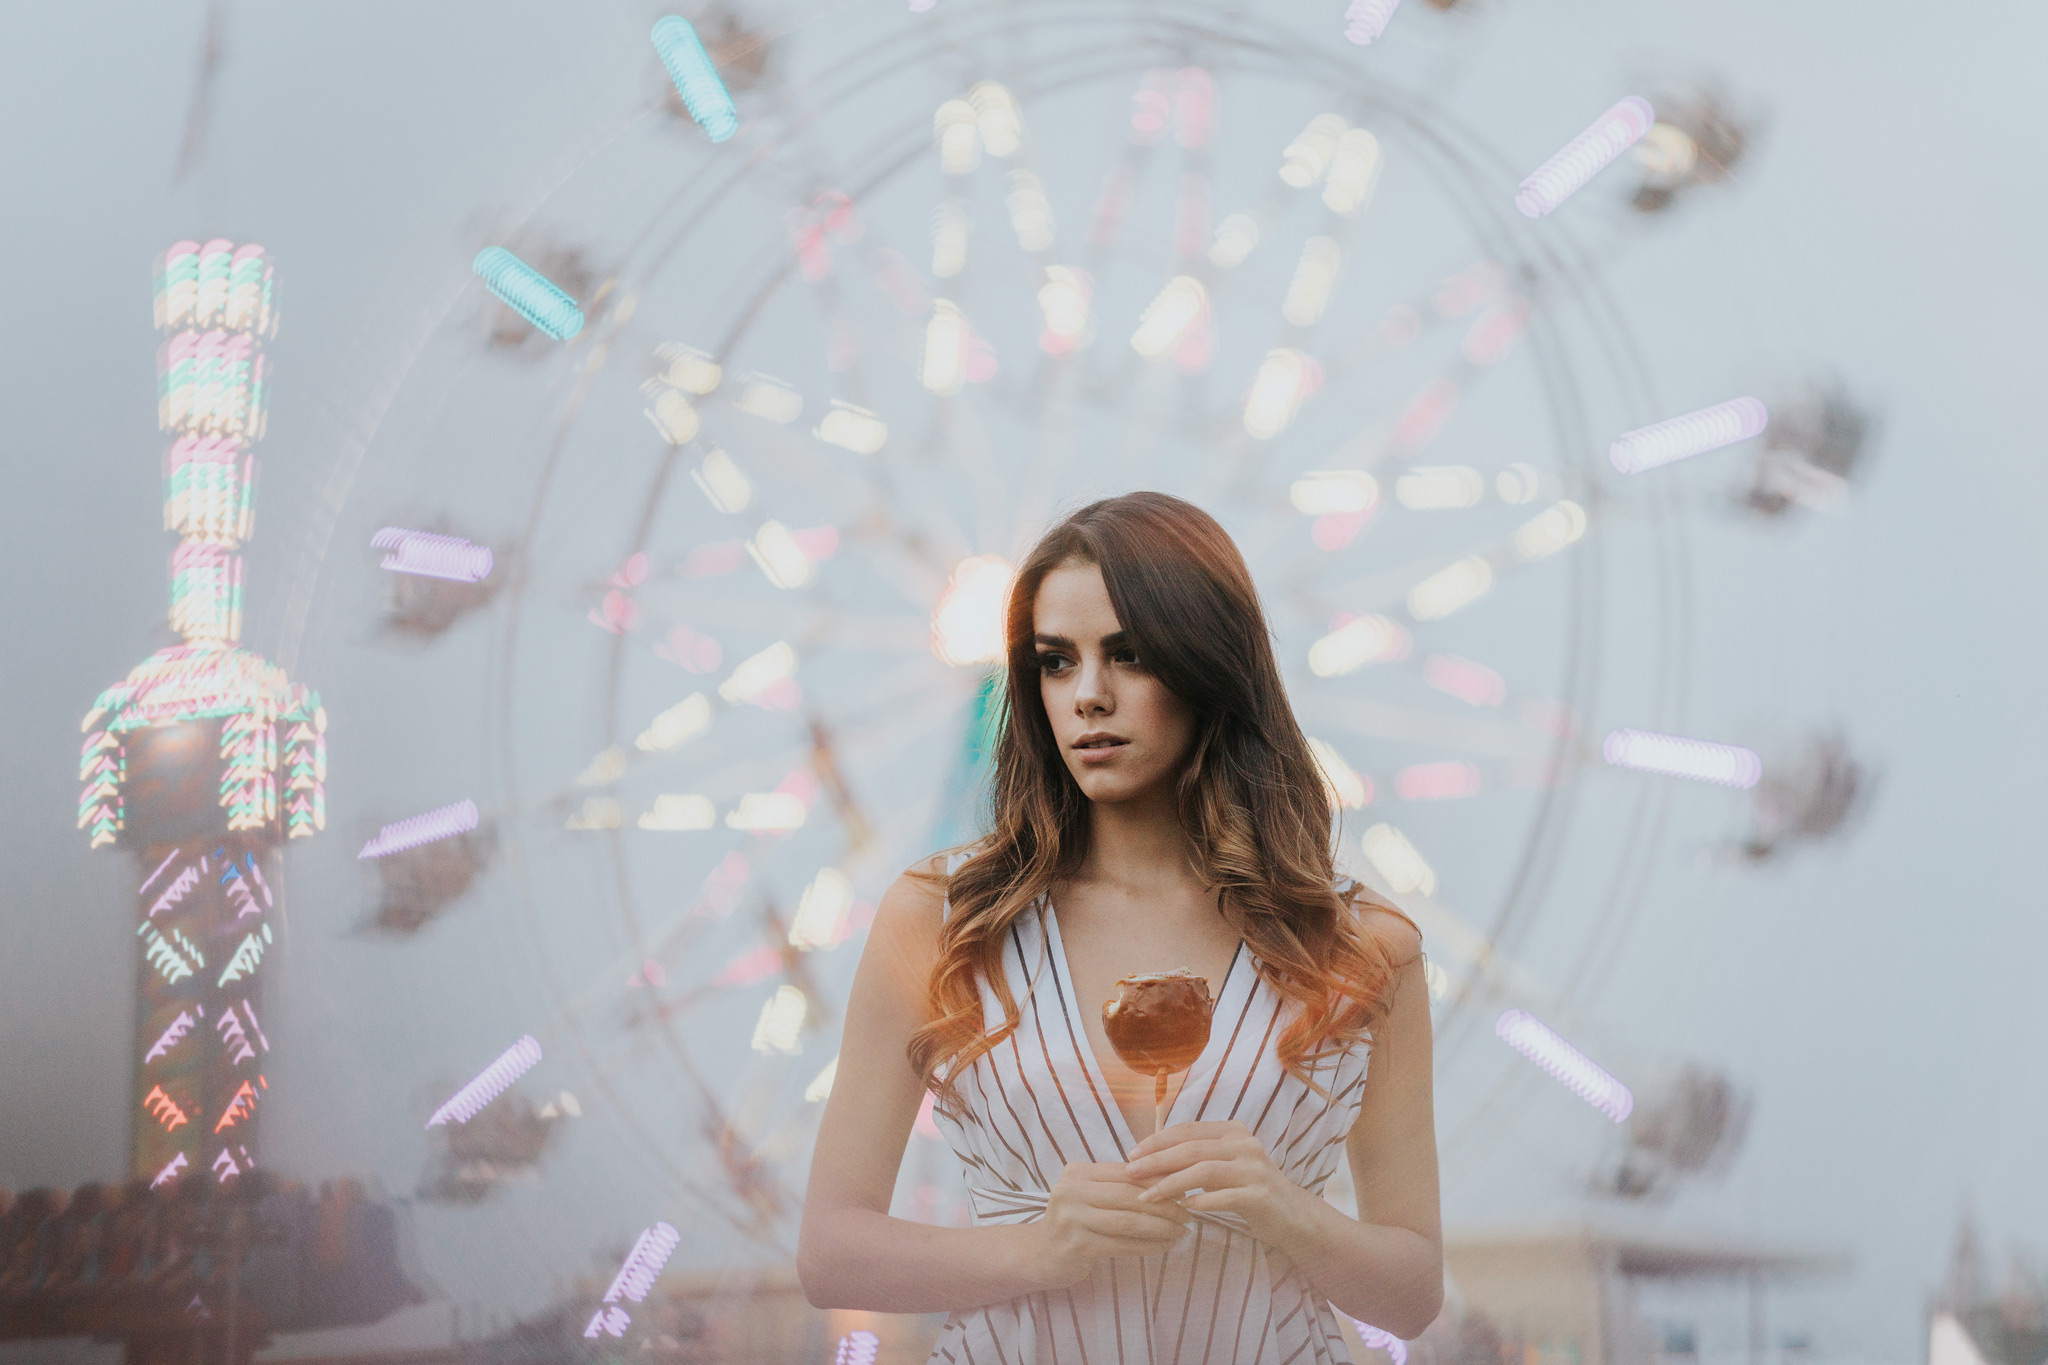 model holding candy apple in front of ferris wheel at the fair